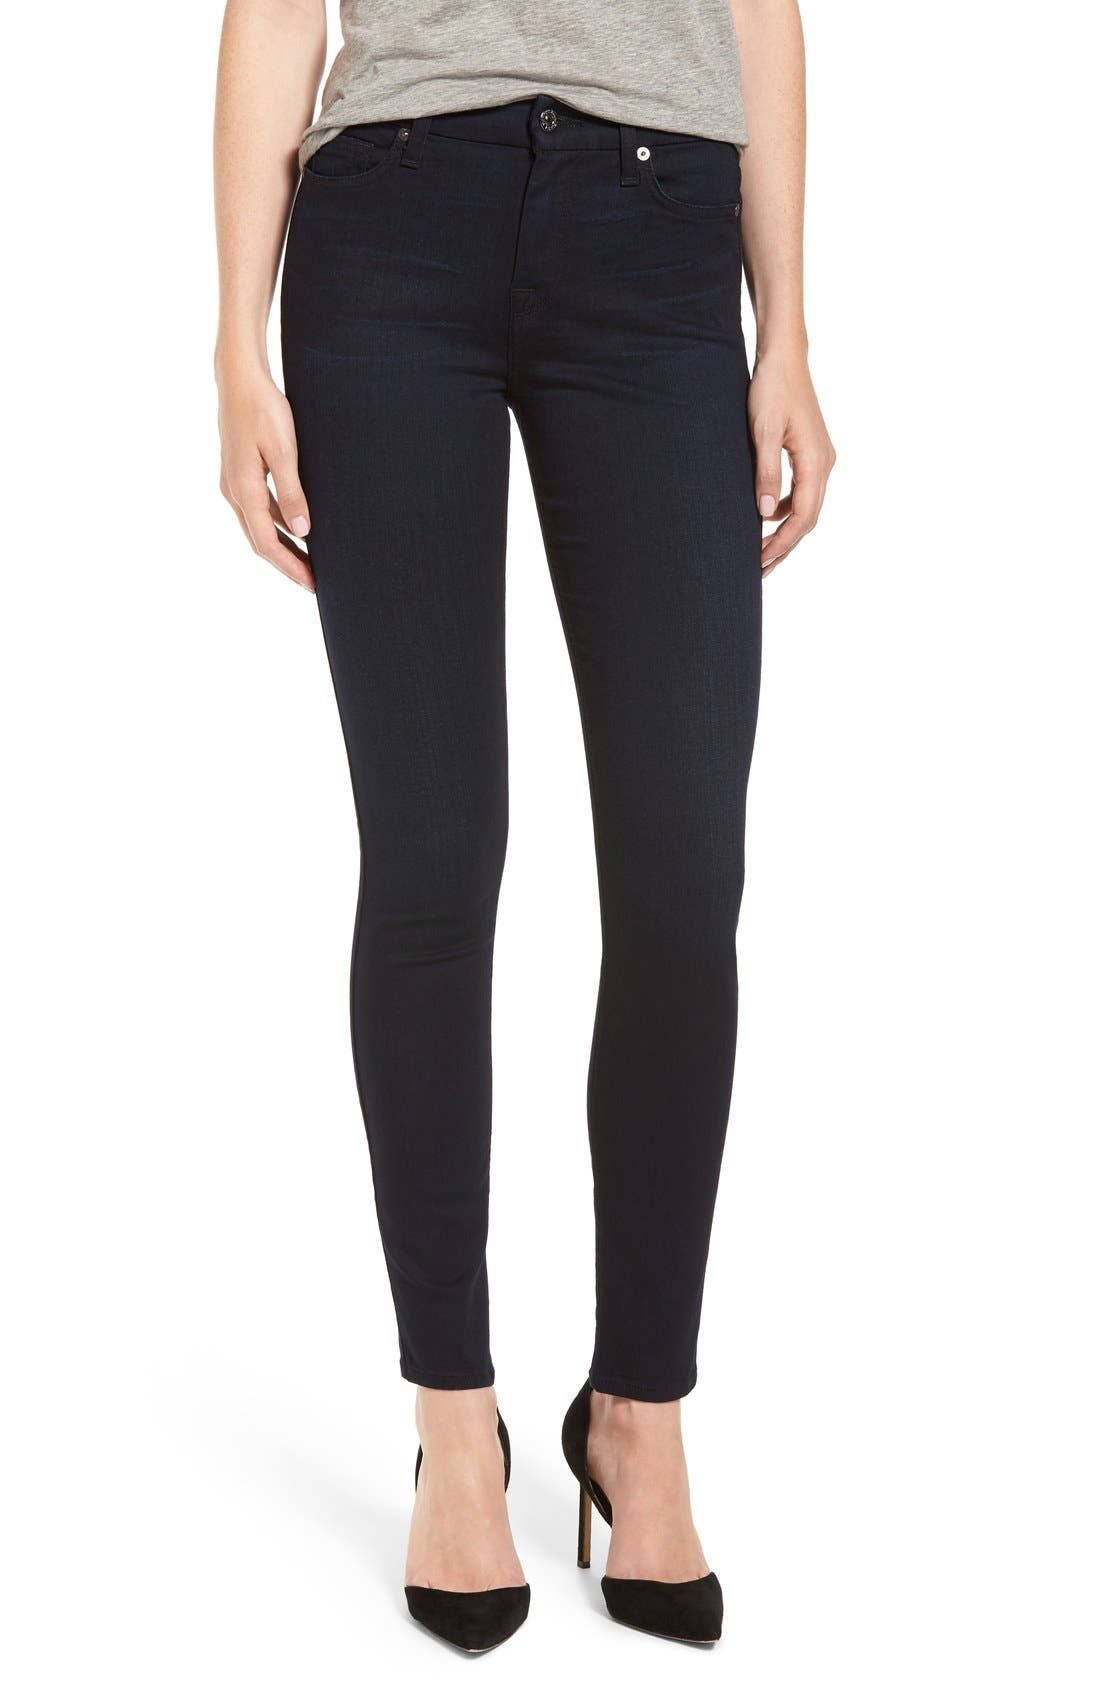 7 For All Mankind b(air) High Waist Skinny Jeans,                             Main thumbnail 1, color,                             Blue/ Black River Thames